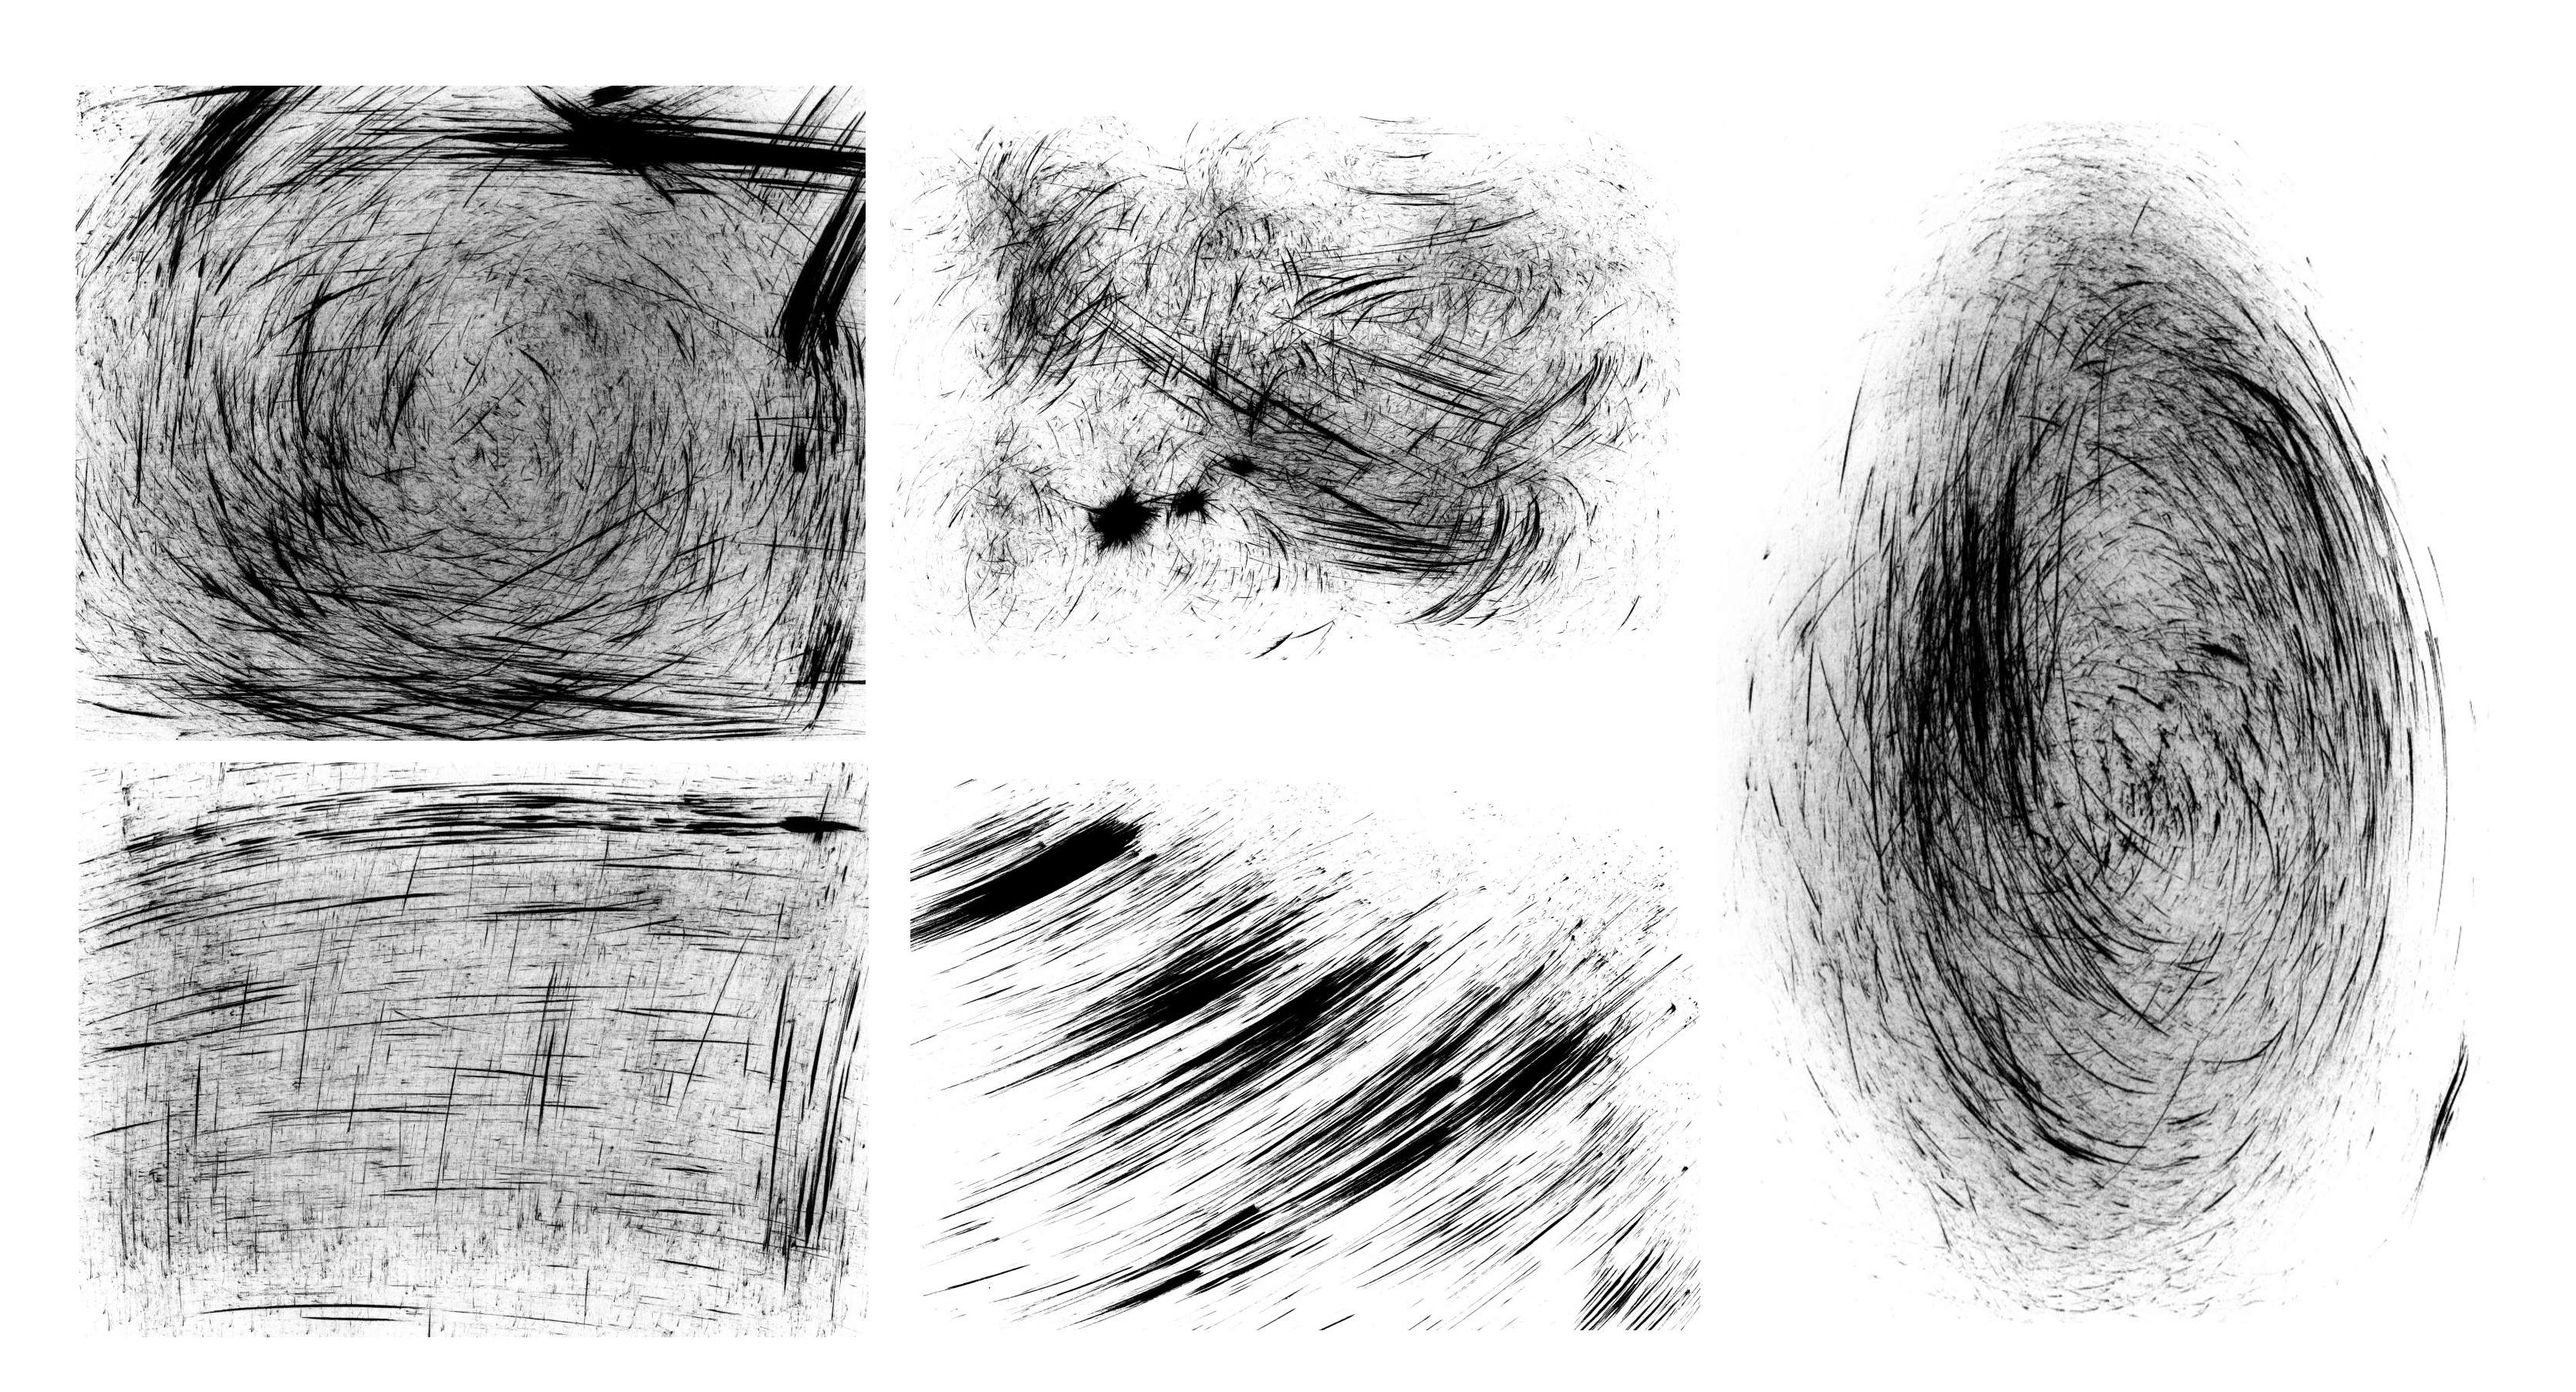 Free download black and white scratch effect 2 jpg